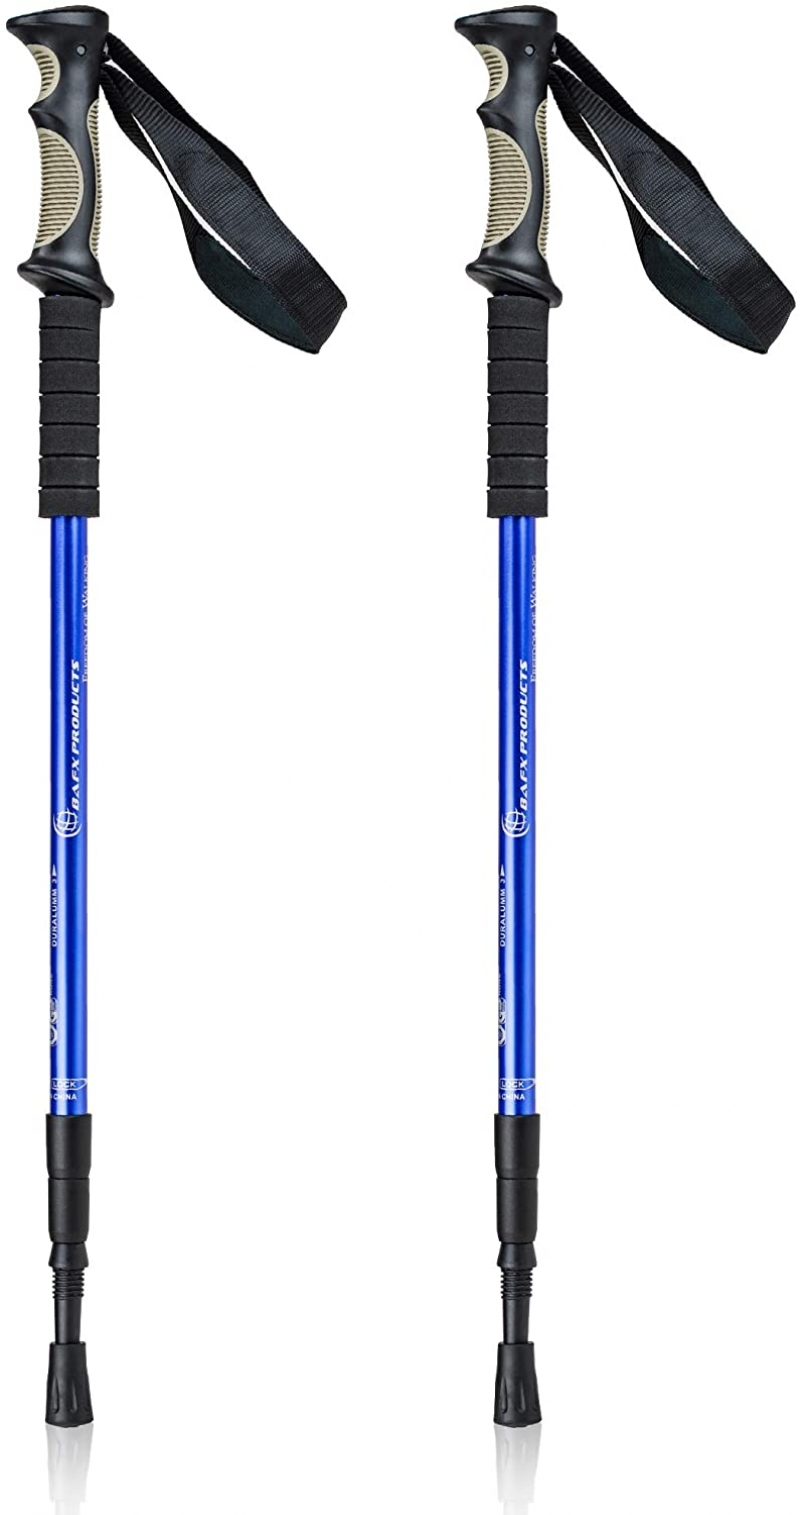 ihocon: Bafx Products Trekking Walking Hiking Poles 輕型登山杖